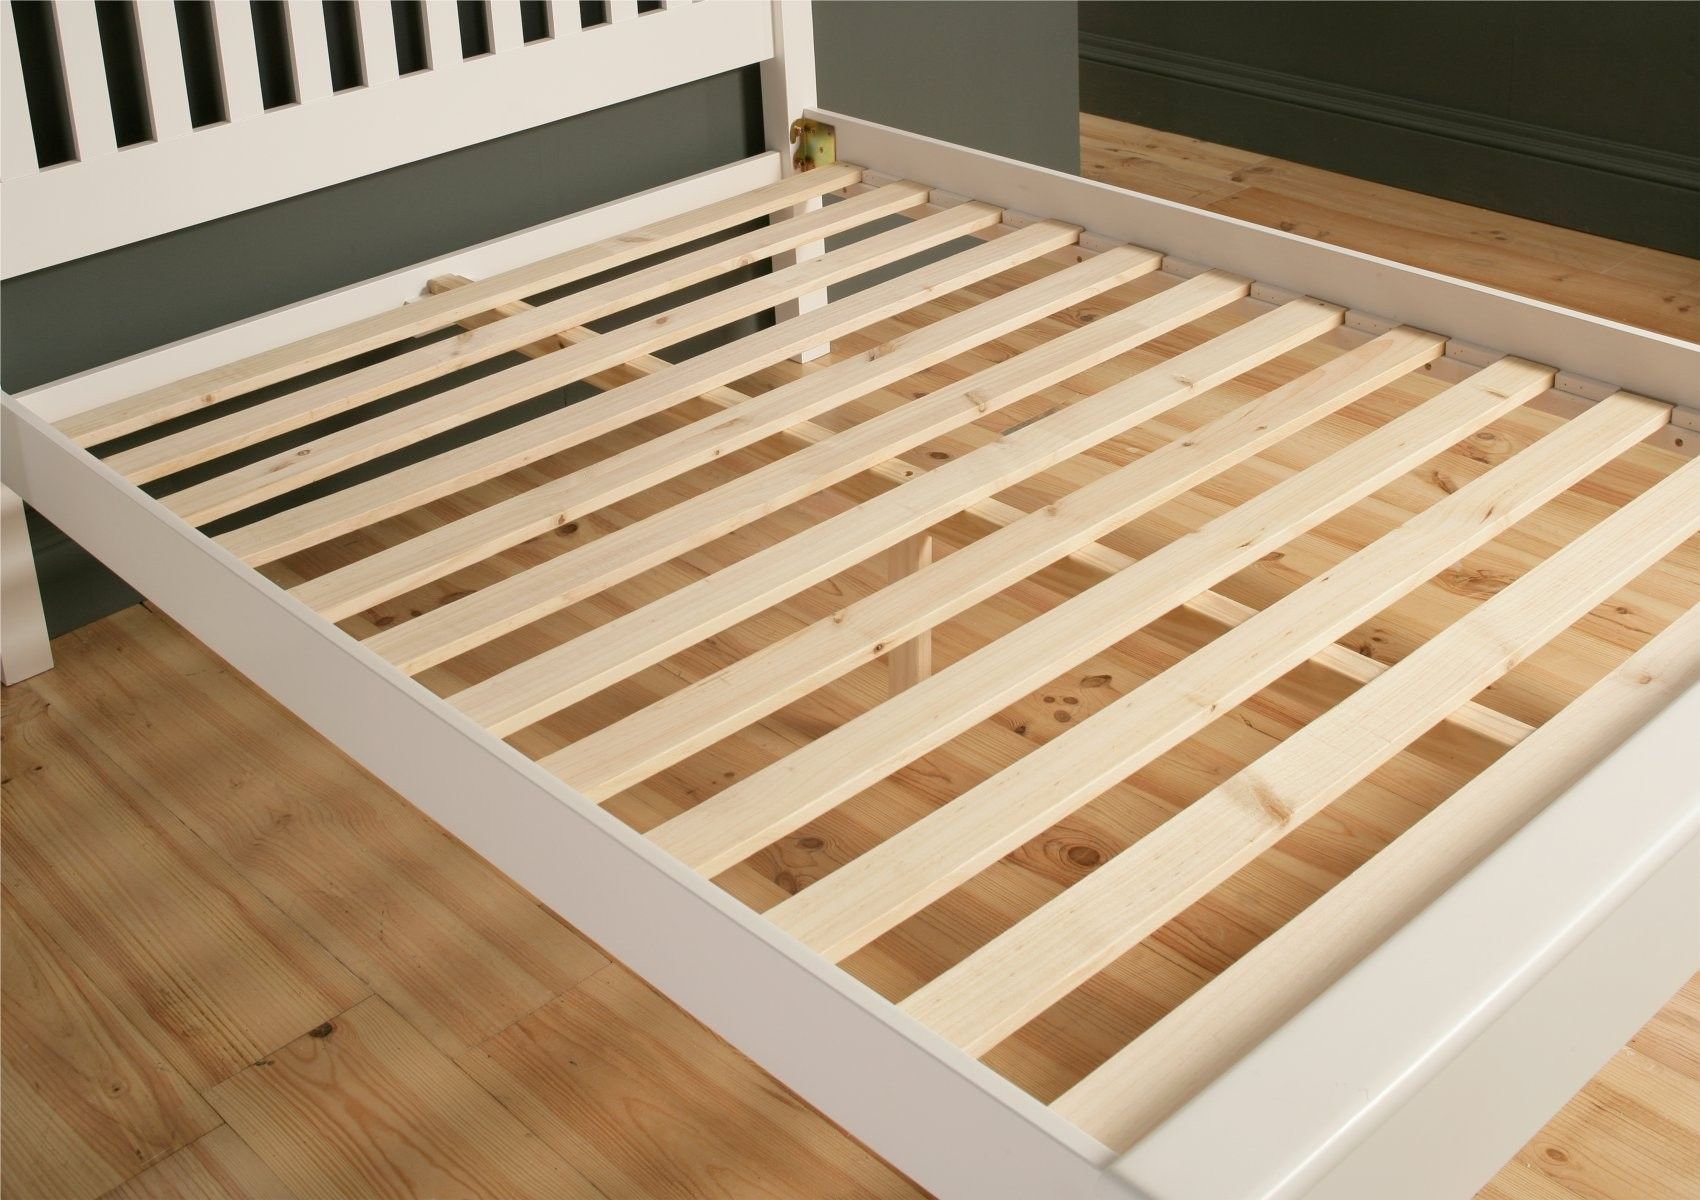 The Low Foot End Design On This Classic Shaker Style Bed Make This